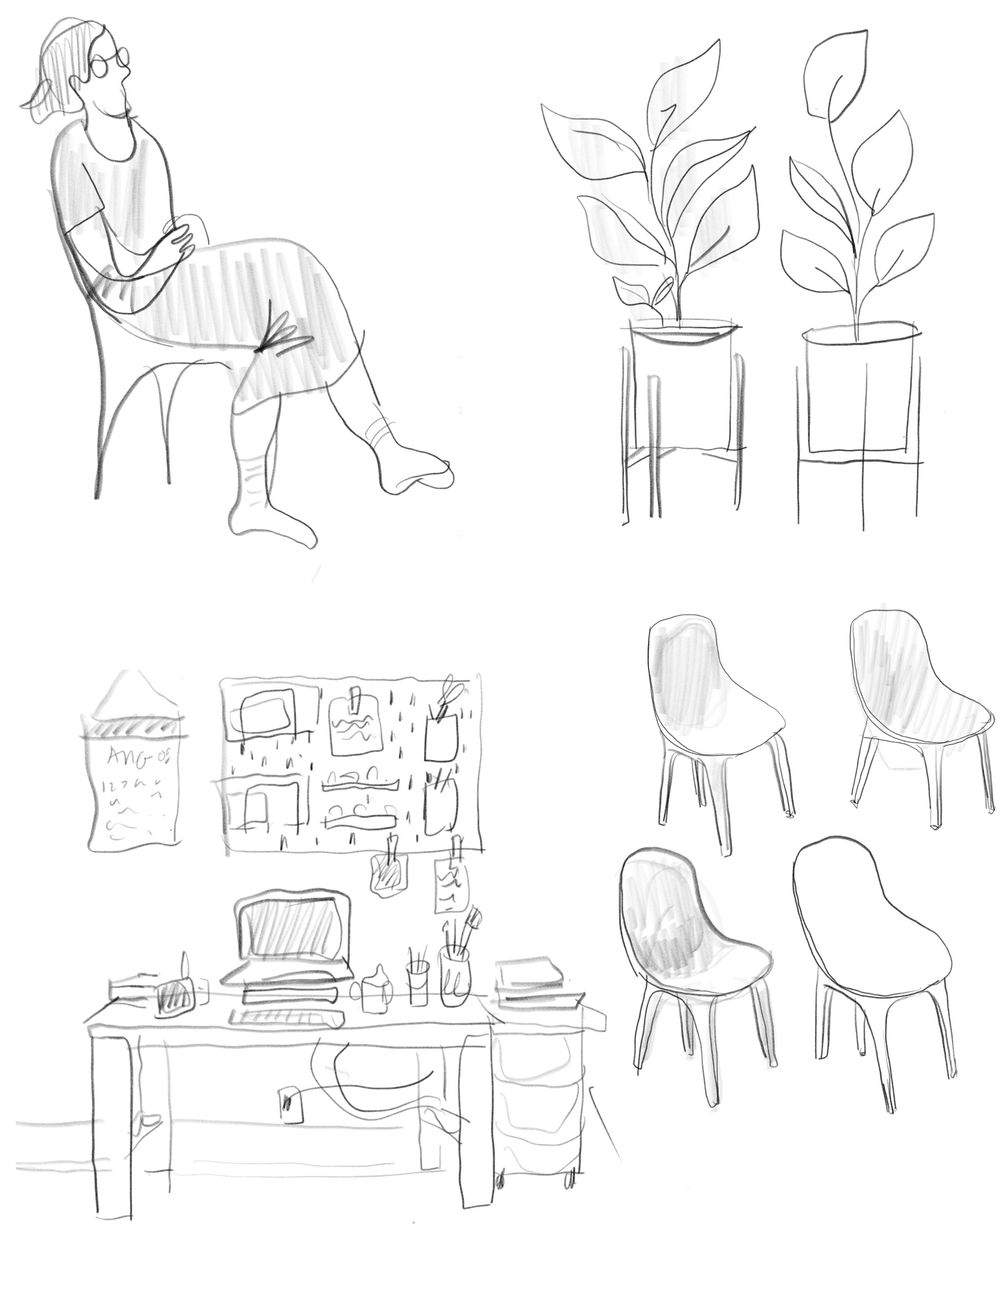 Home Office - image 4 - student project